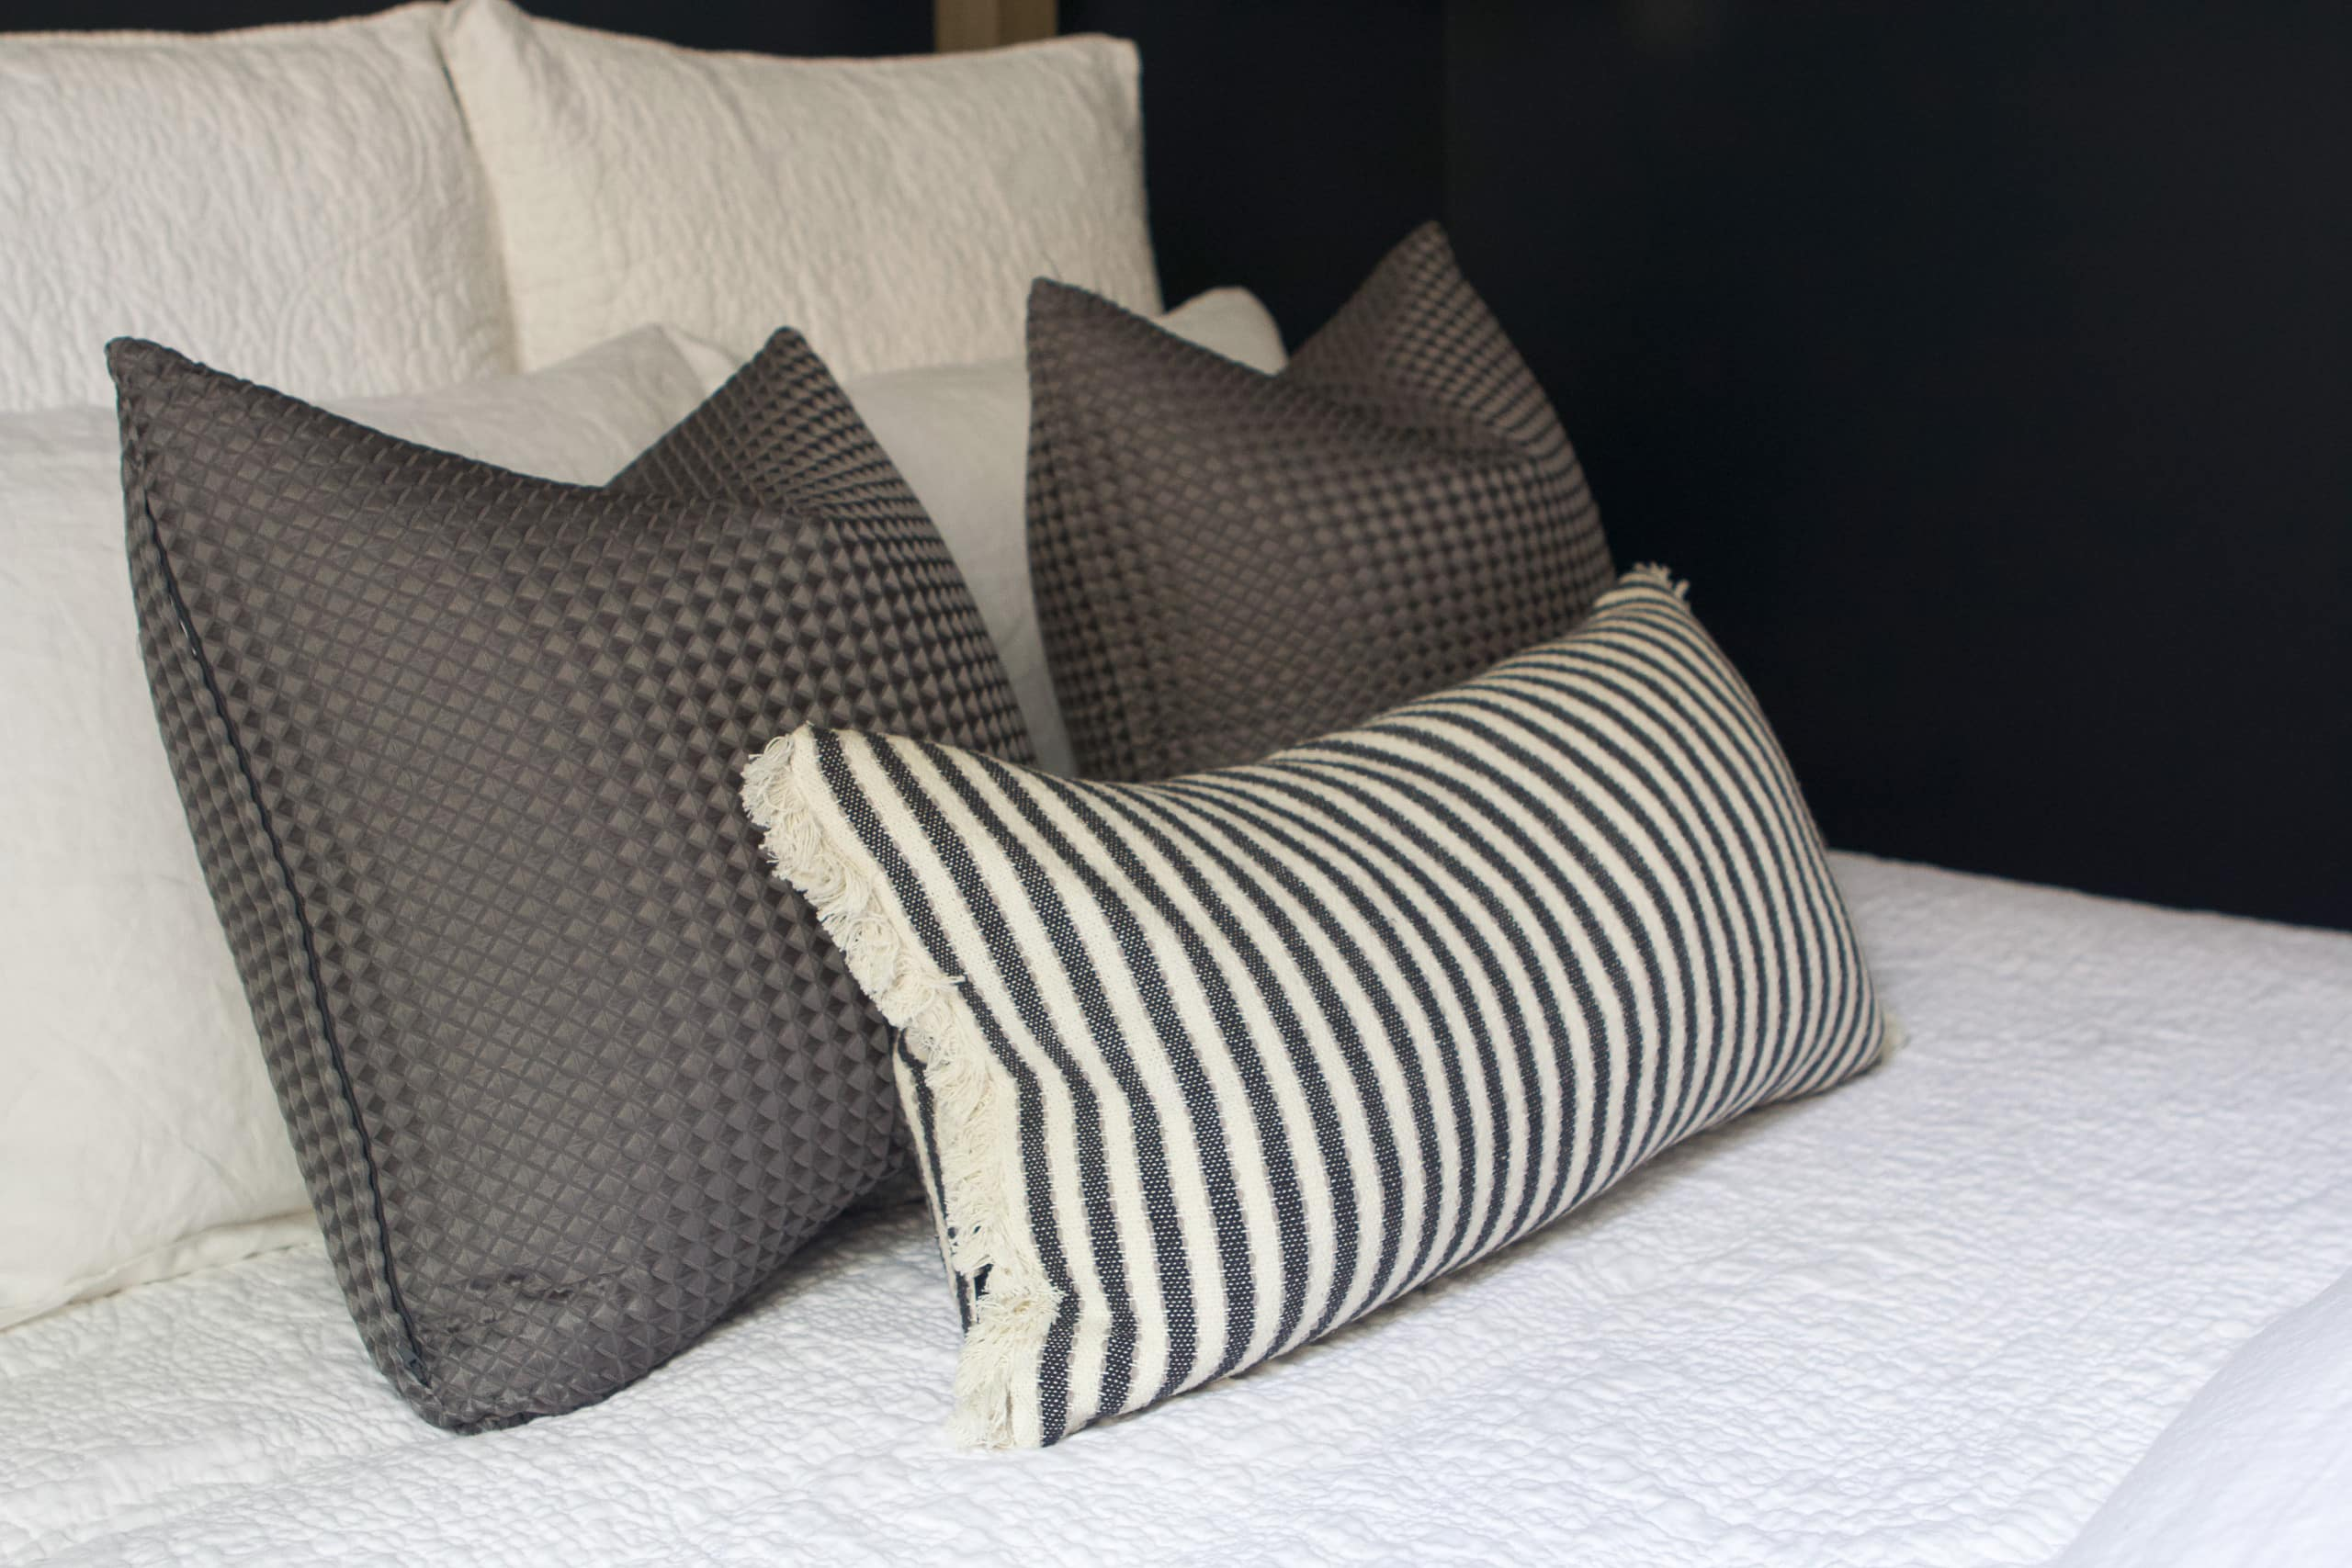 Add some throw pillows to the guest room bed